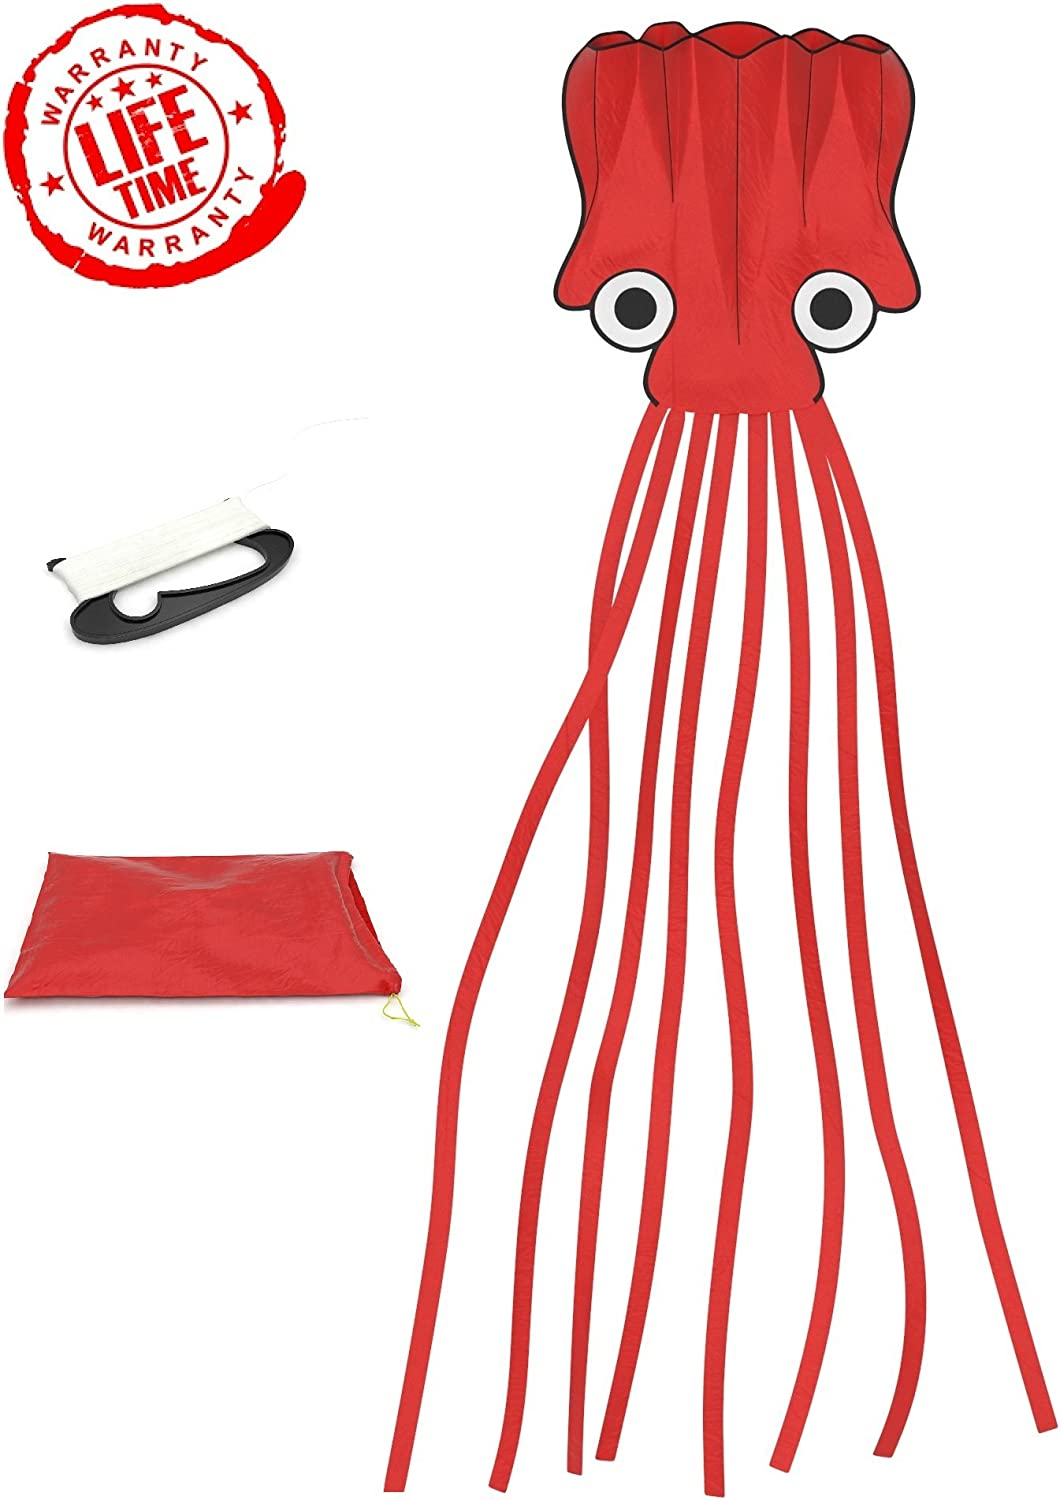 Octopus Kite Easy to Fly Toys for Boys; Lifetime Warranty; Best Quality; LARGE Red Parafoil 16ftx4ft; Folds to Small Bag; With long String, Winder, Full Flying and Folding Instructions;Best Beach kite